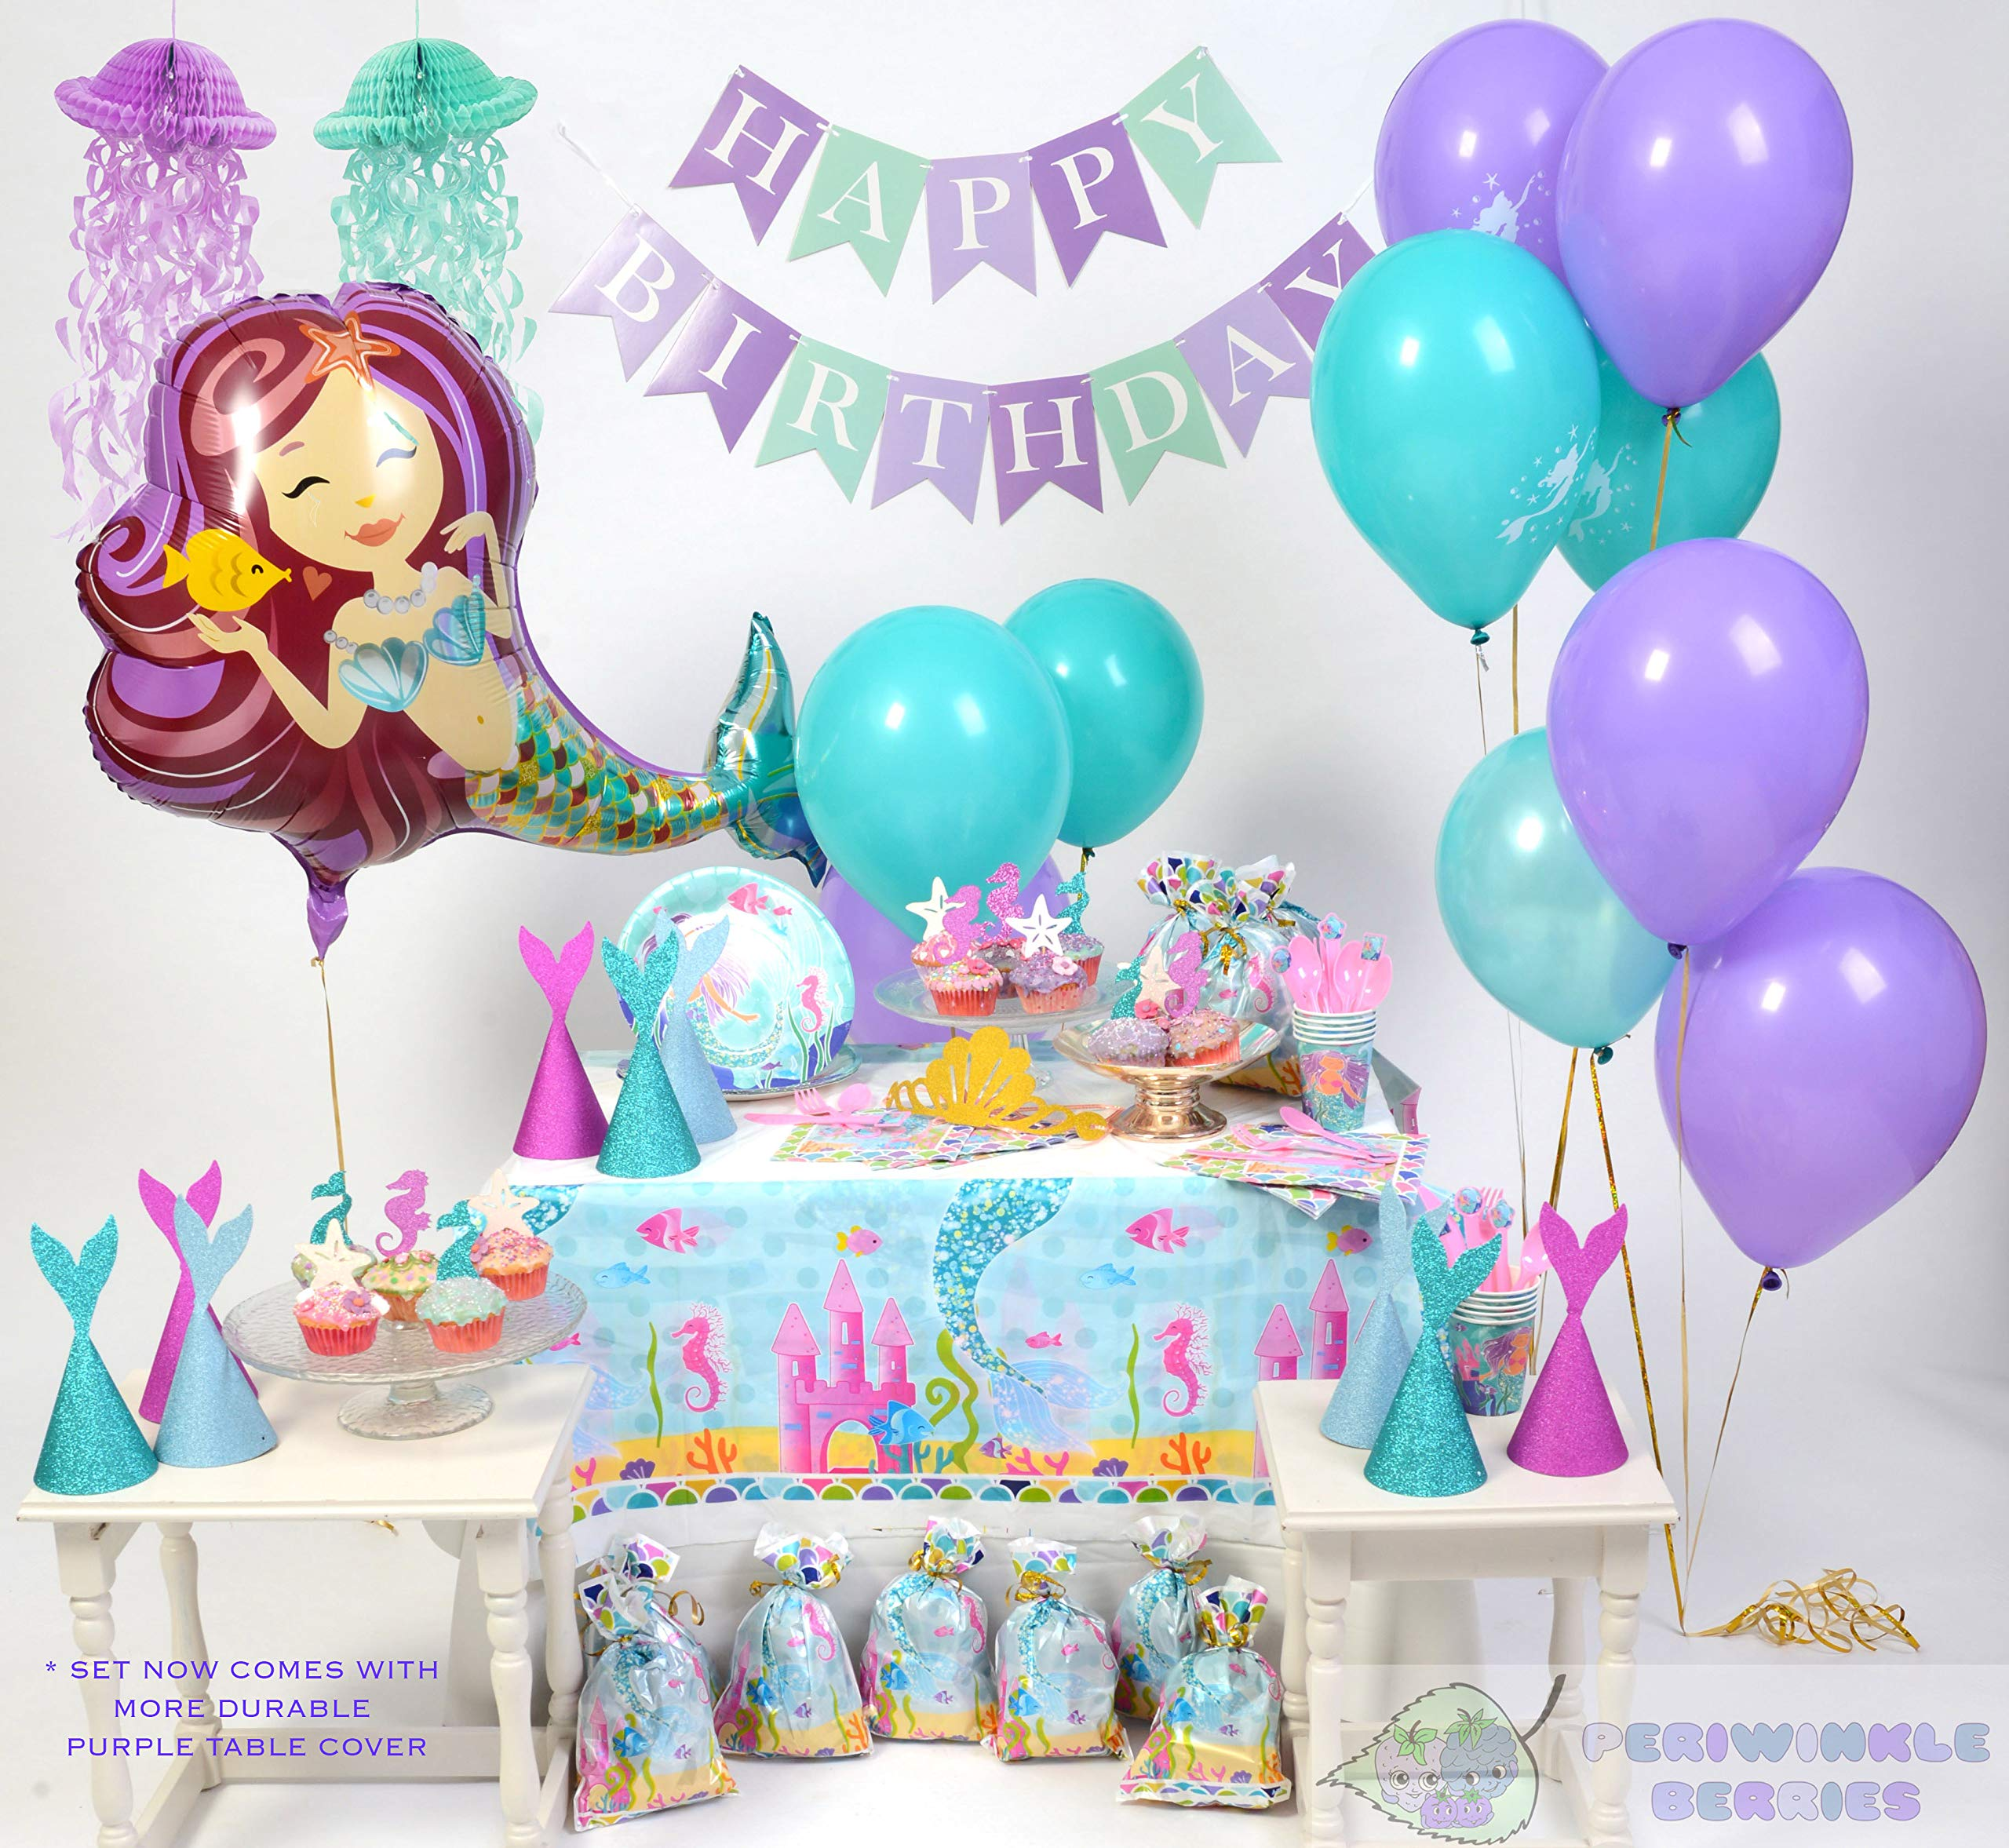 Mermaid Party Supplies - Complete Tableware and Decoration Deluxe Set - Plates, Cups, Utensils, Napkins, Table Cloth, Balloons, Happy Birthday Banner, Cupcake Topper, Favor Bags, Mermaid Hats & Crown by Periwinkle Berries (Image #3)